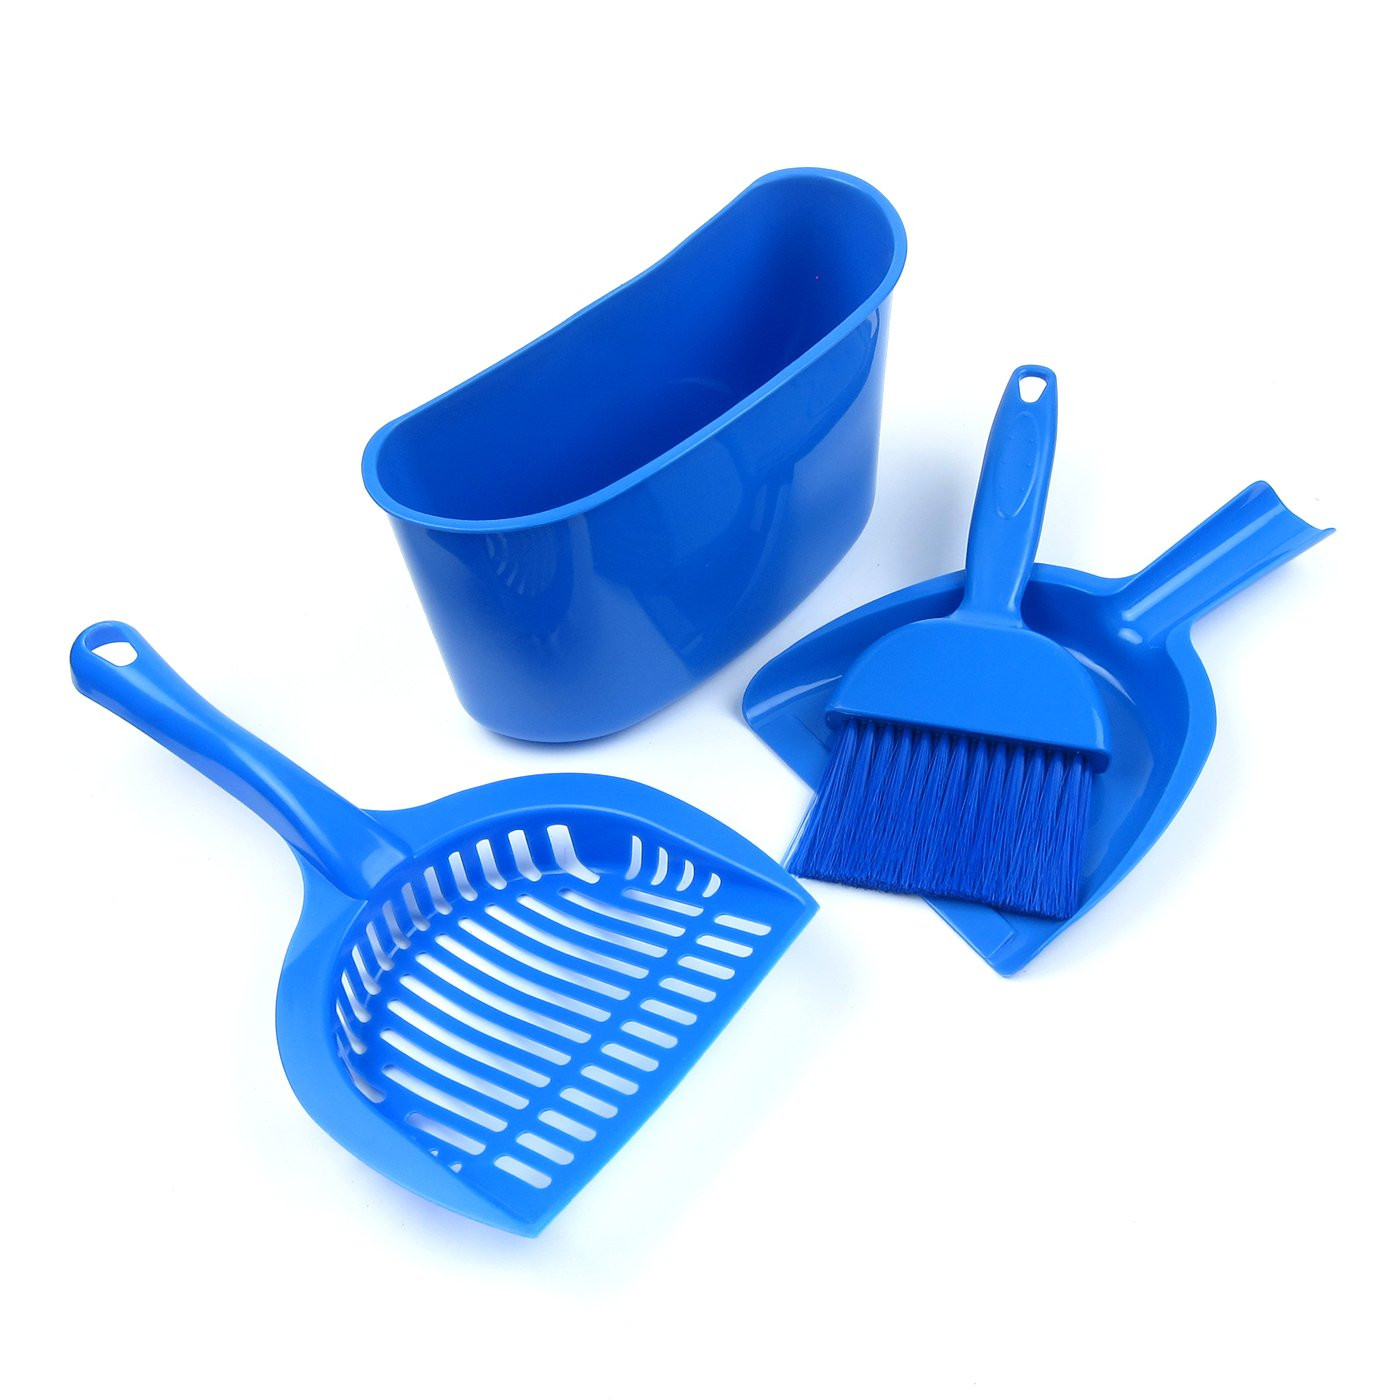 Alfie Pet by Petoga Couture - Aaron Cat or Small Animal Cleaning Brush Set - Color: Blue